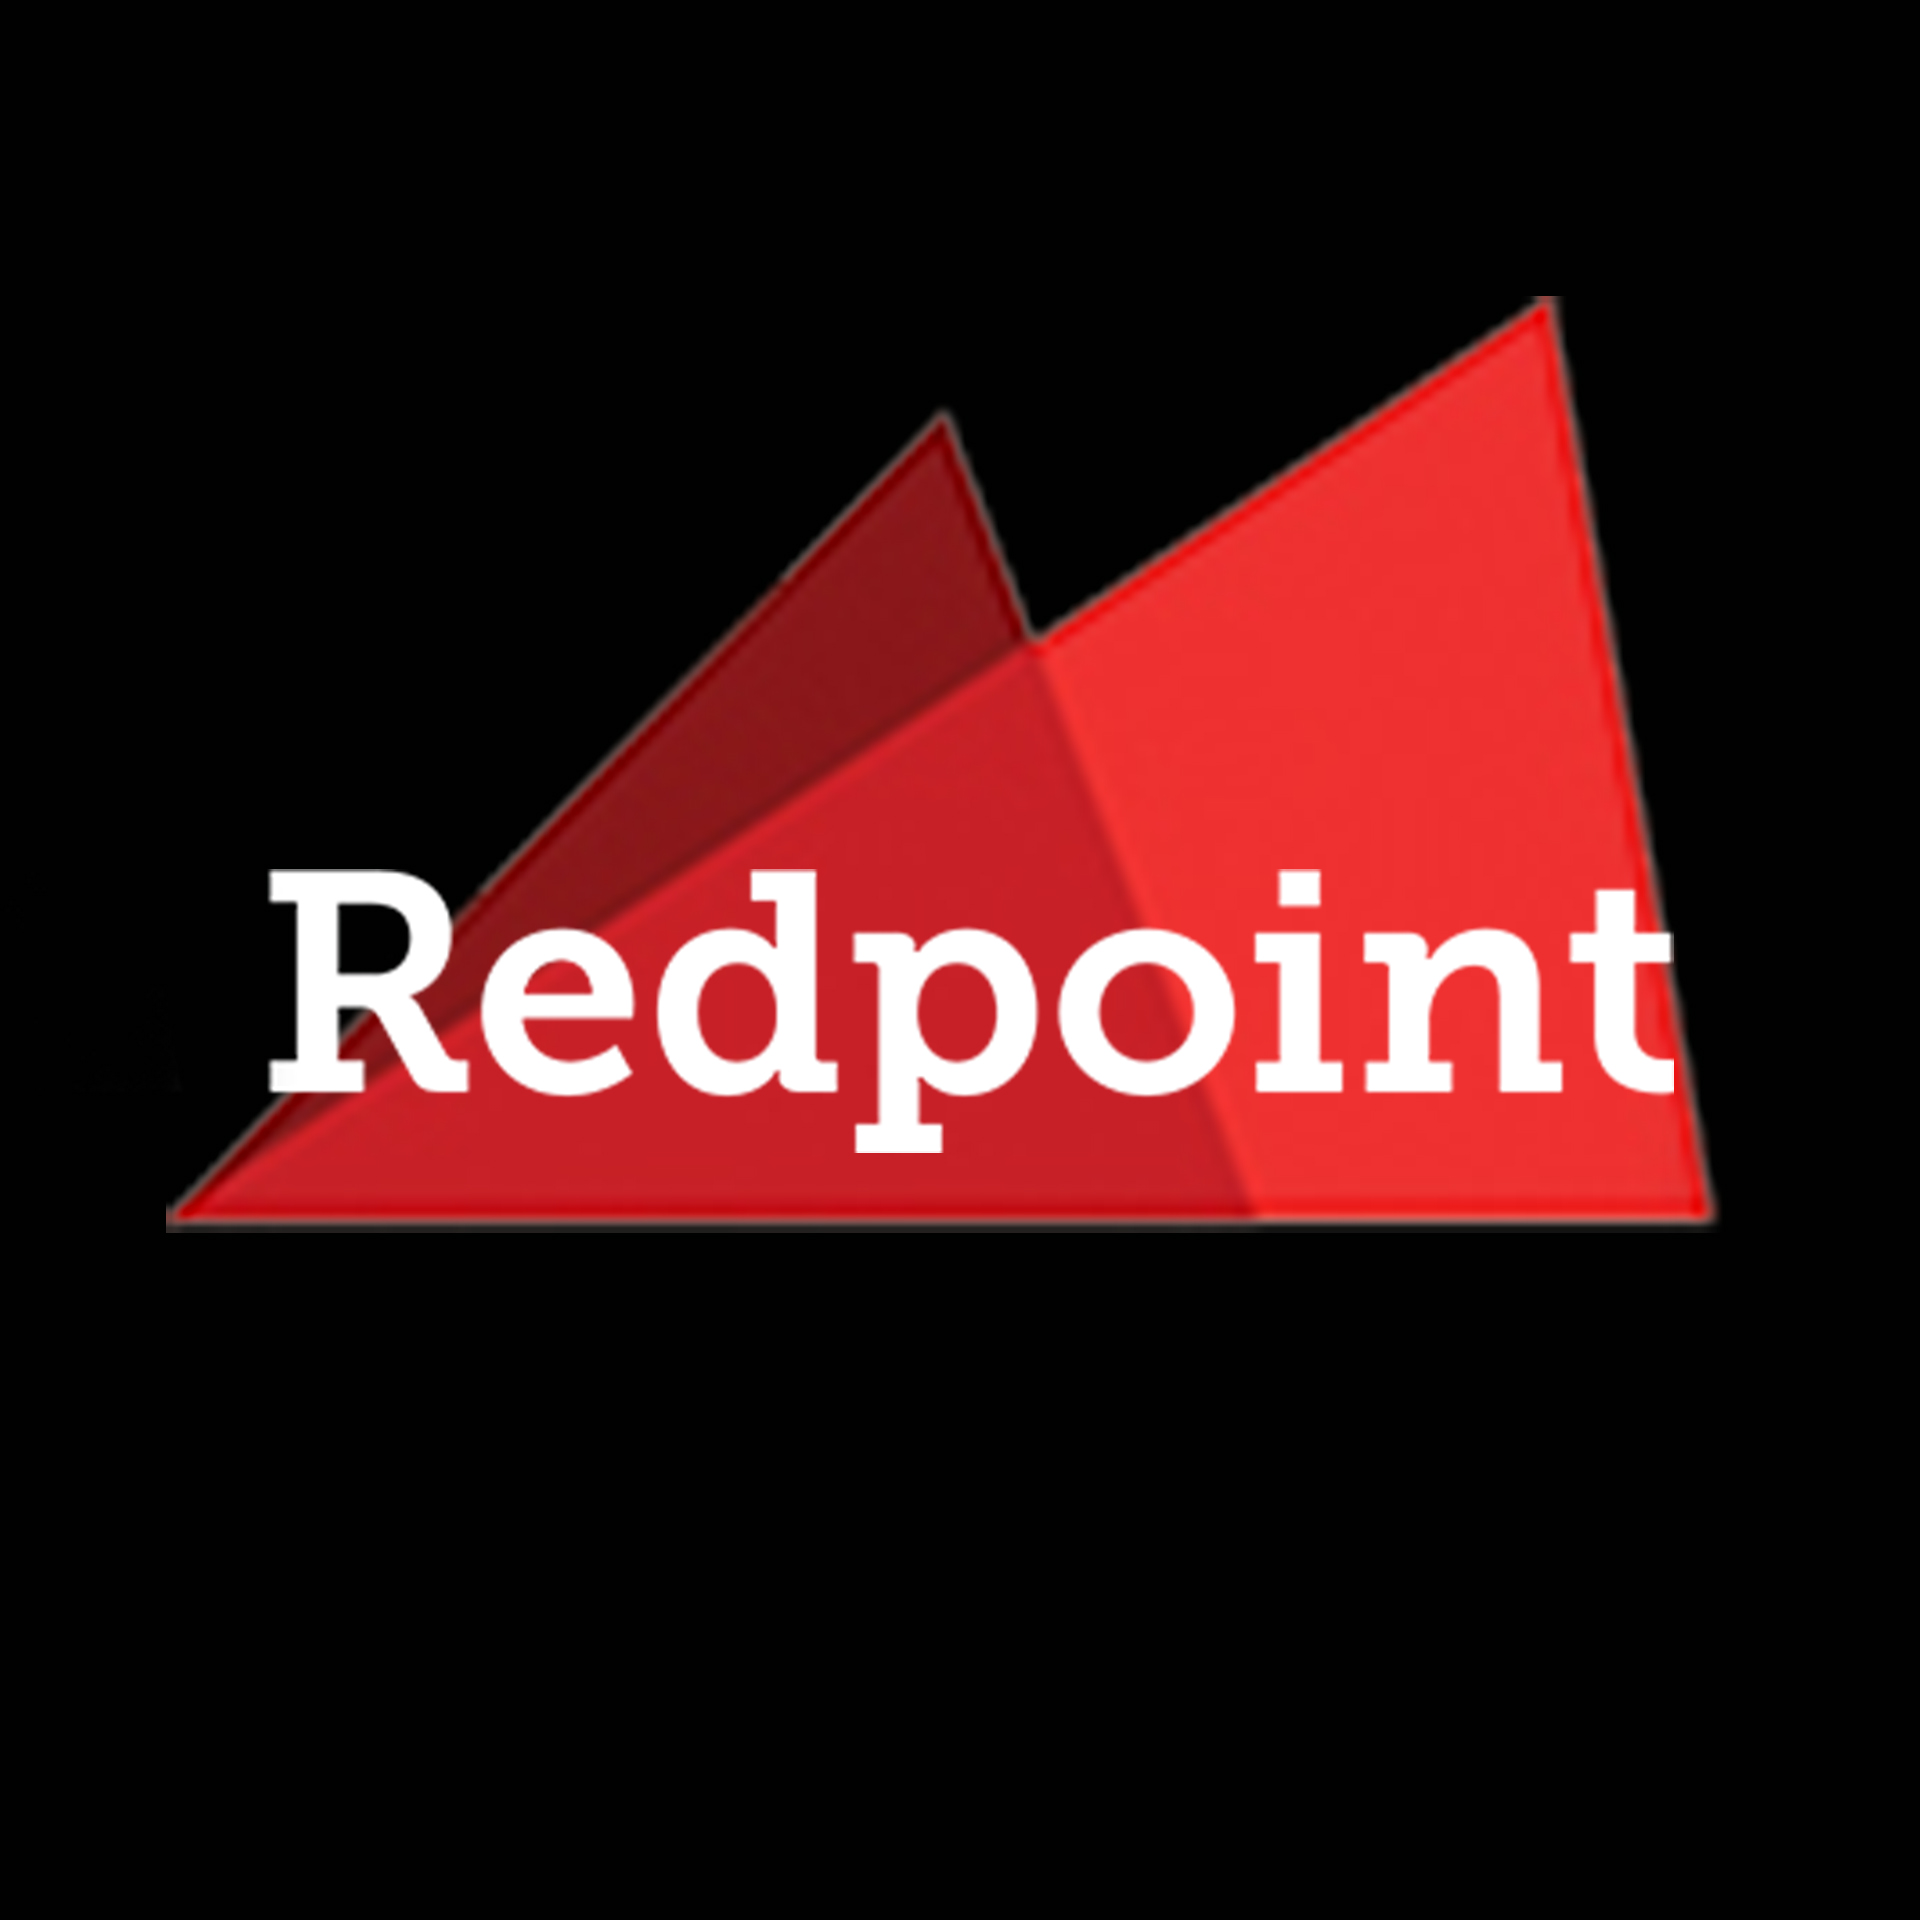 Redpoint Ventures<br><span>(Institutional VC)</span>